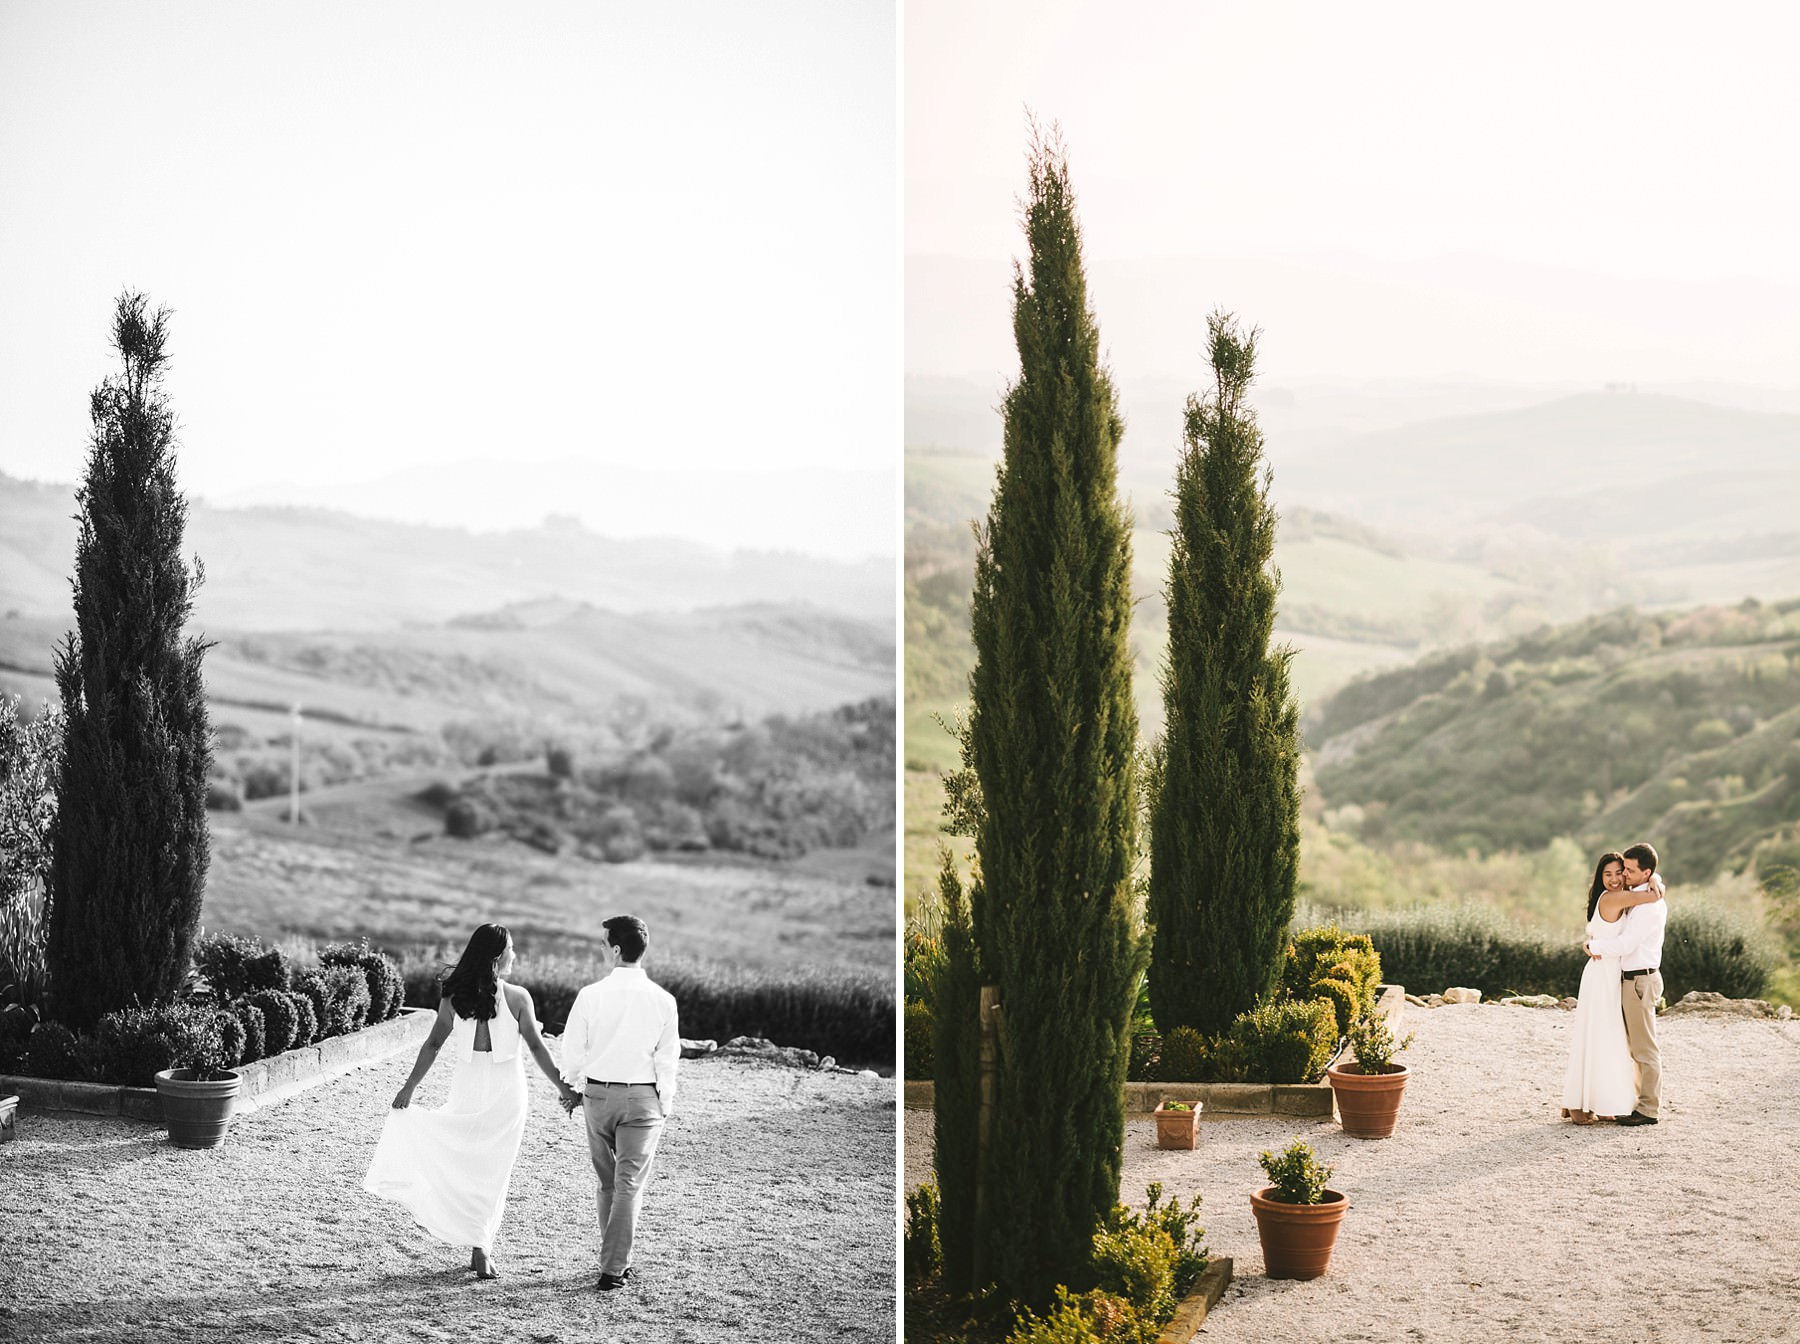 Romantic and elegant anniversary photo session in Tuscany countryside near the town of Iano